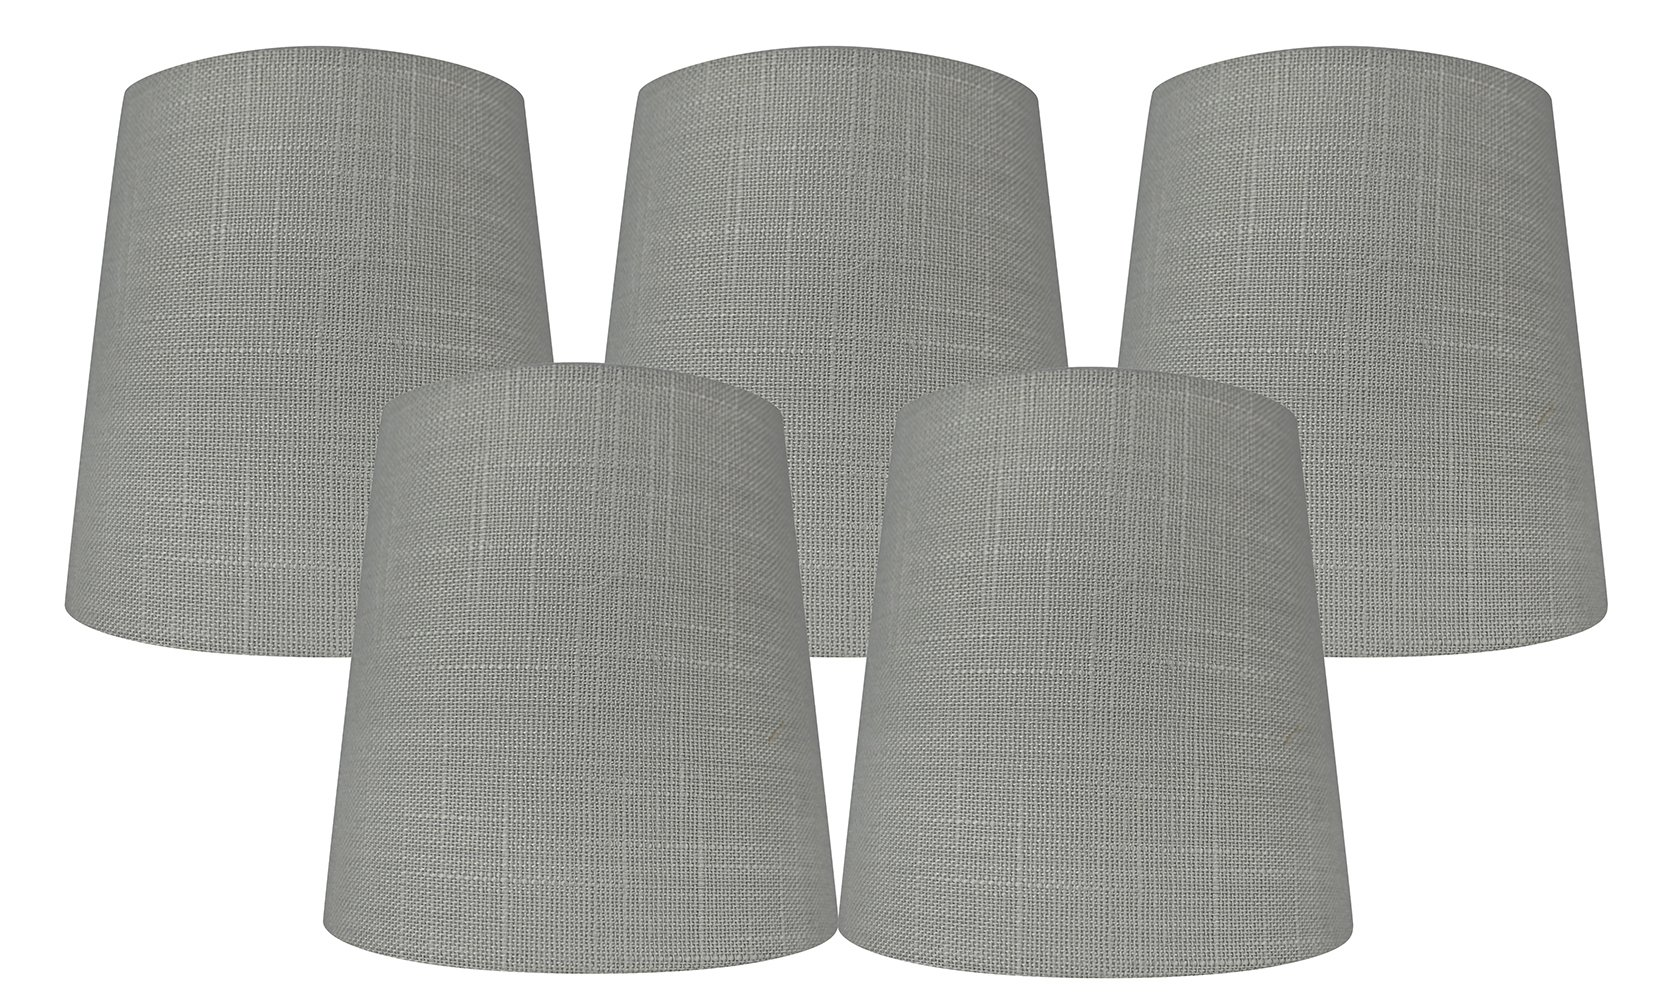 Meriville Set of 5 Gray Linen Clip On Chandelier Lamp Shades, 4-inch by 5-inch by 5-inch (Grey, set of 5)